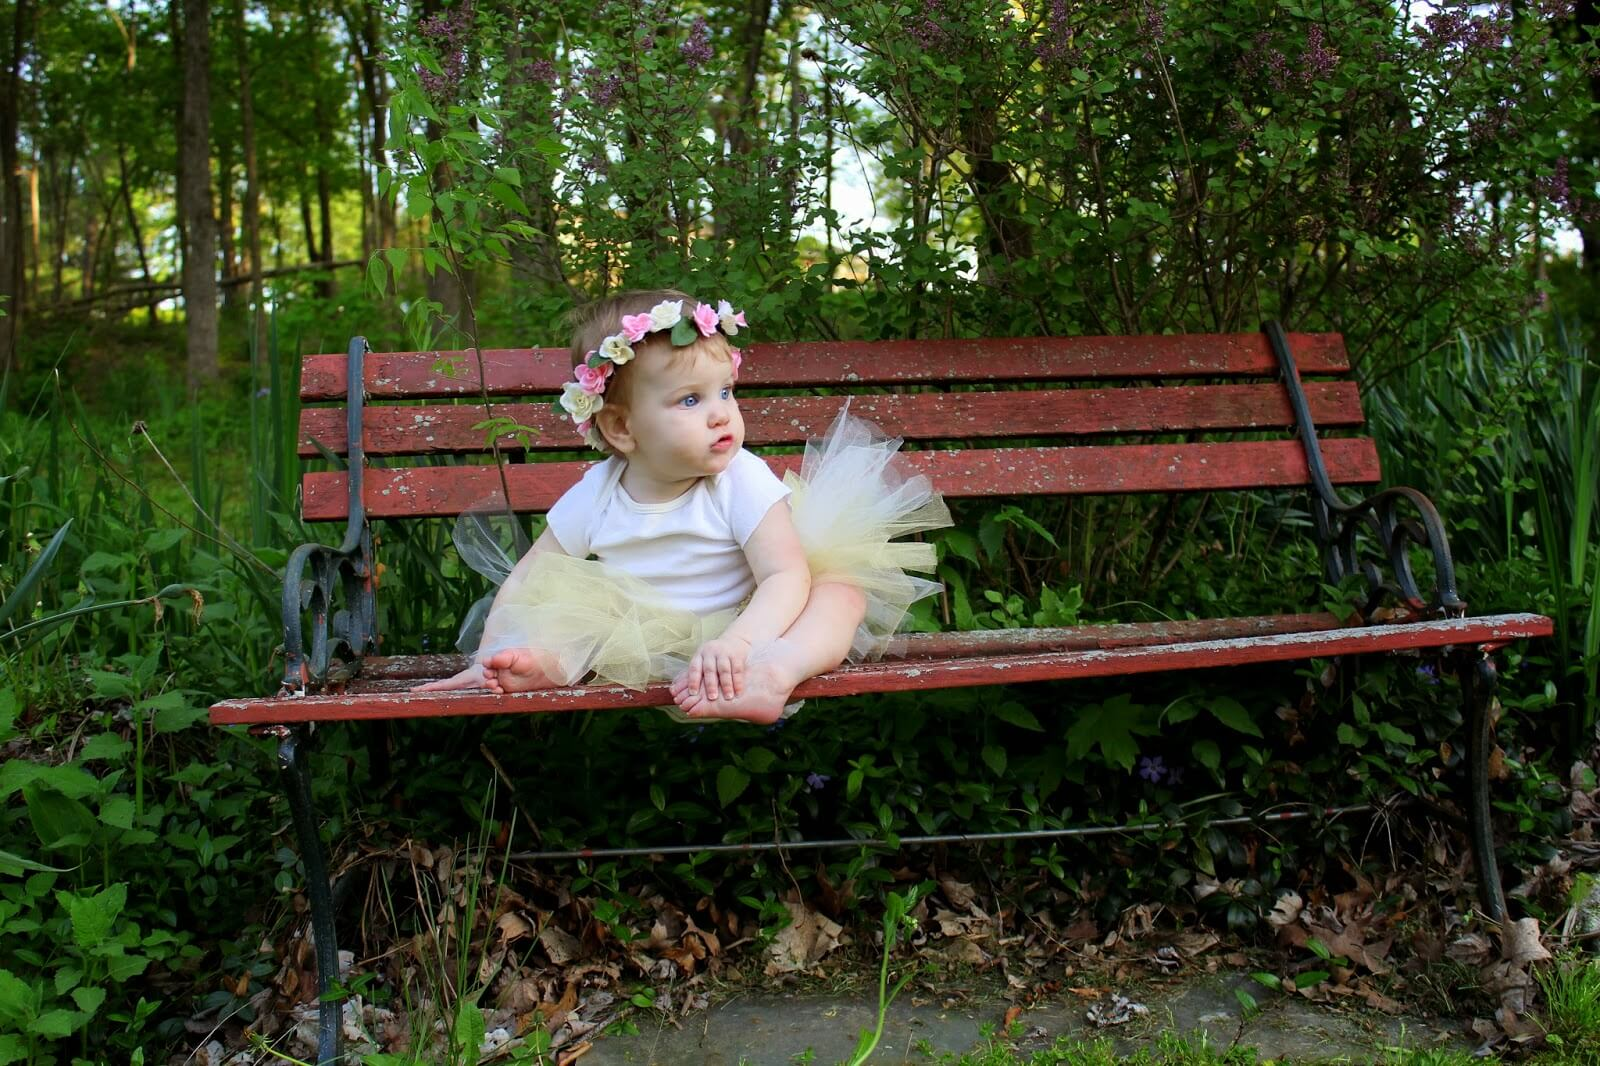 evangeline on bench